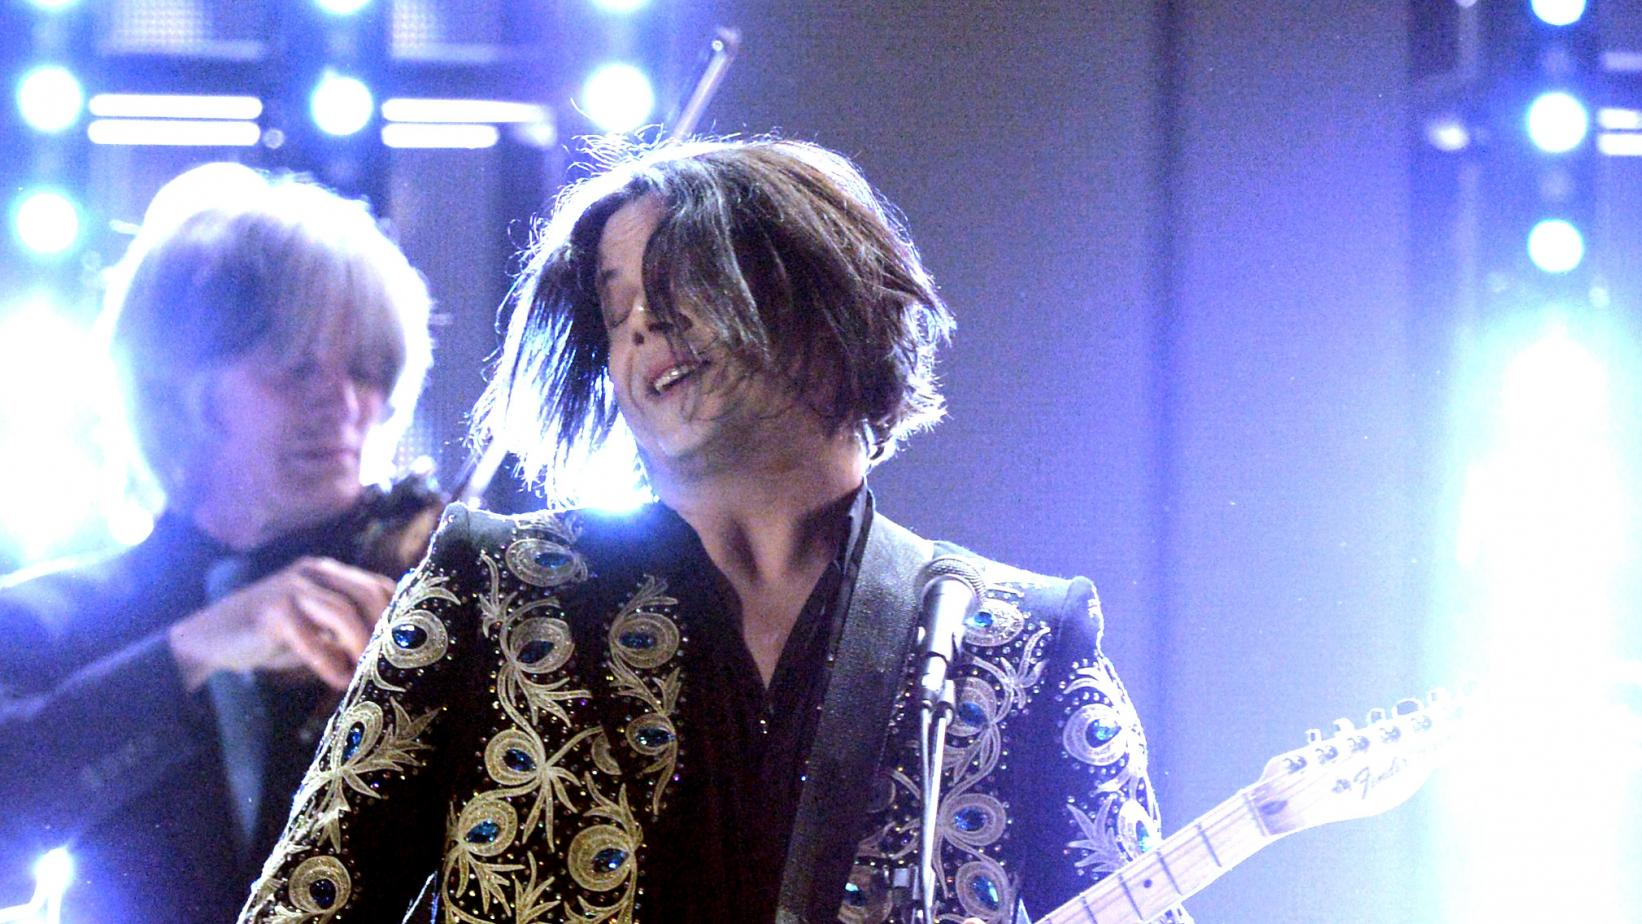 Jack White performs live